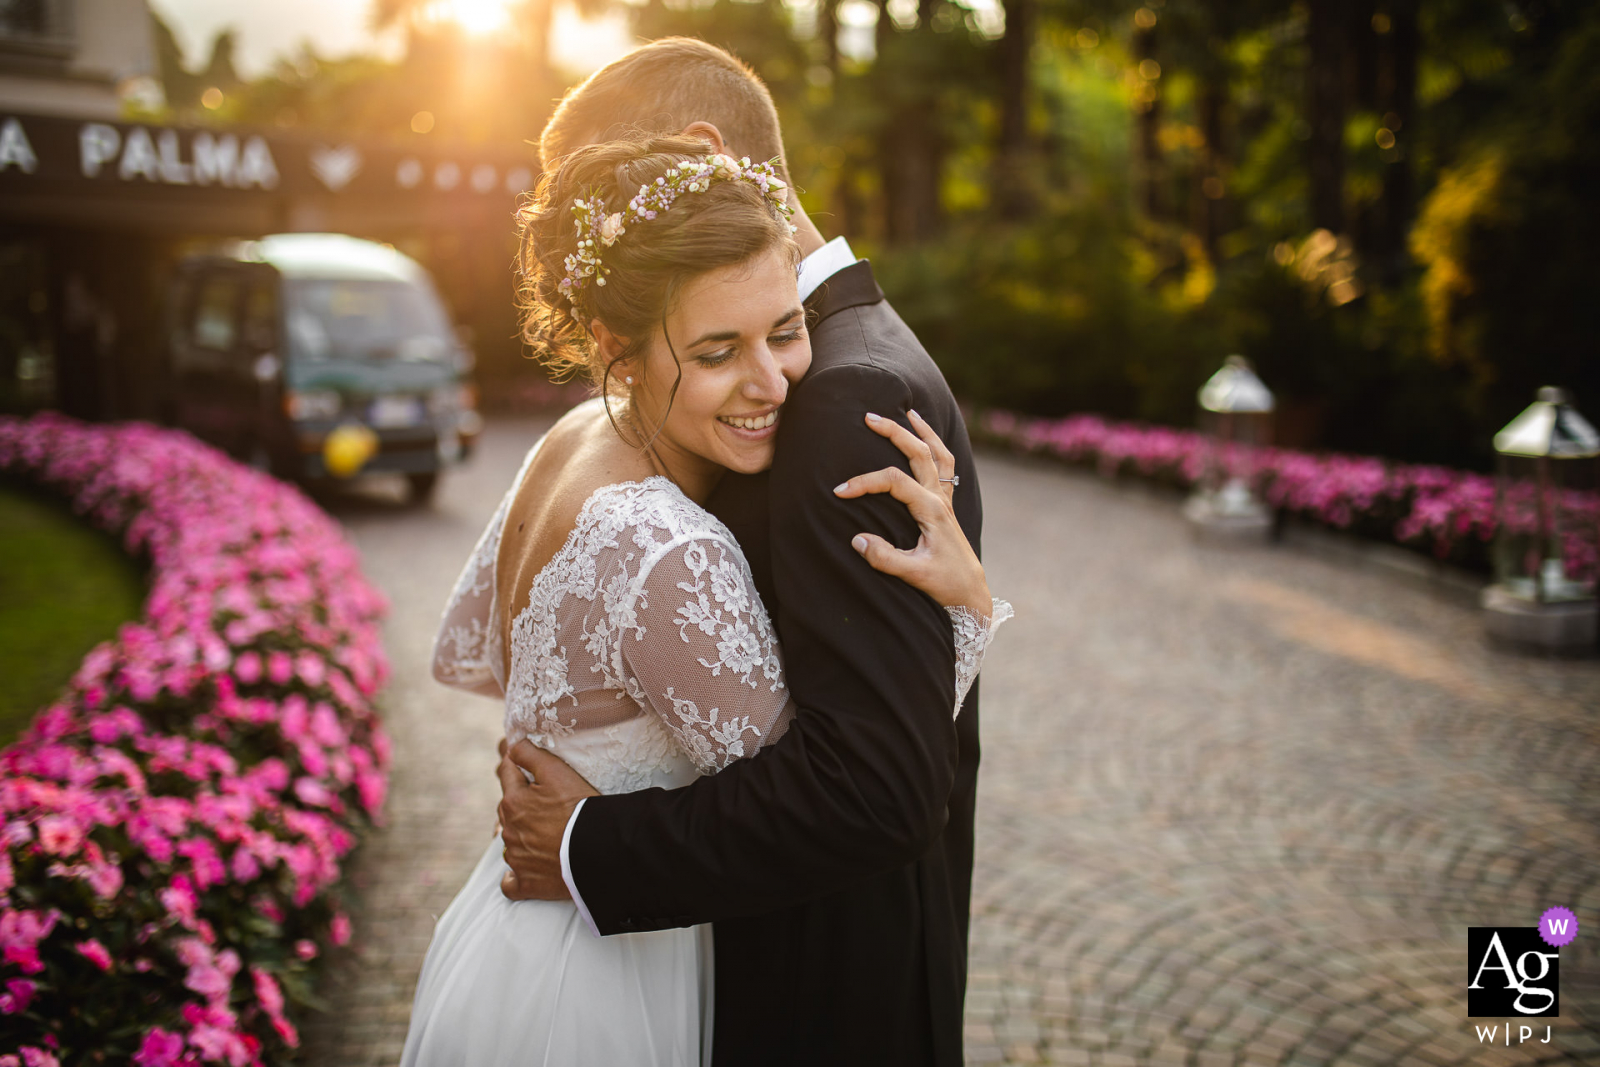 Hotel La Palma Stresa Italy couples Hug at the sunset artistic wedding portrait by the flowers